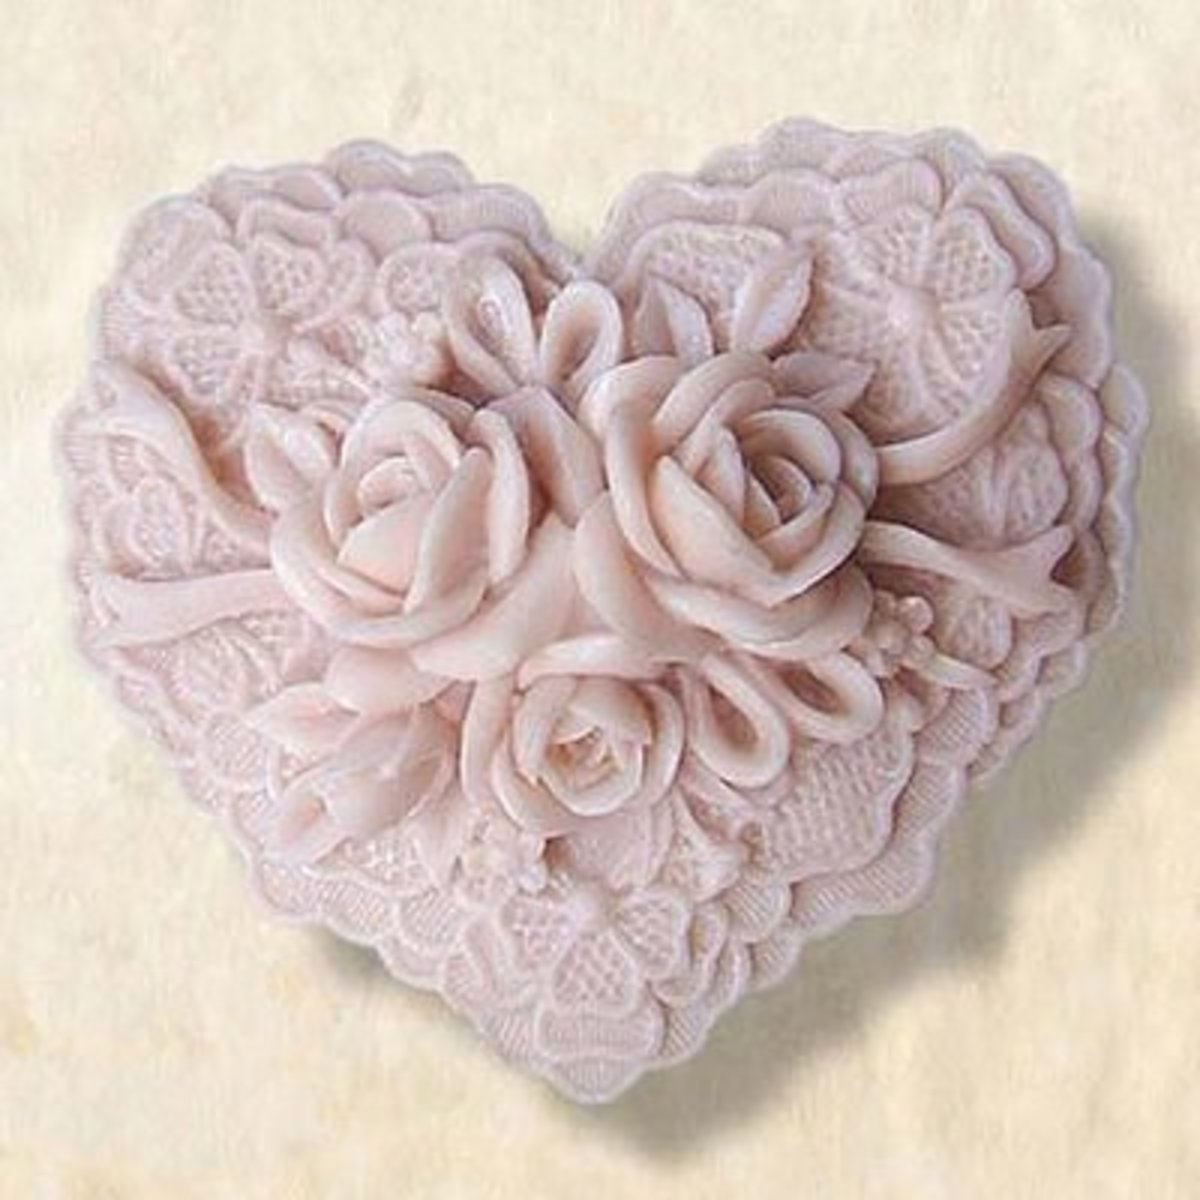 Lovely heart shaped soap mold